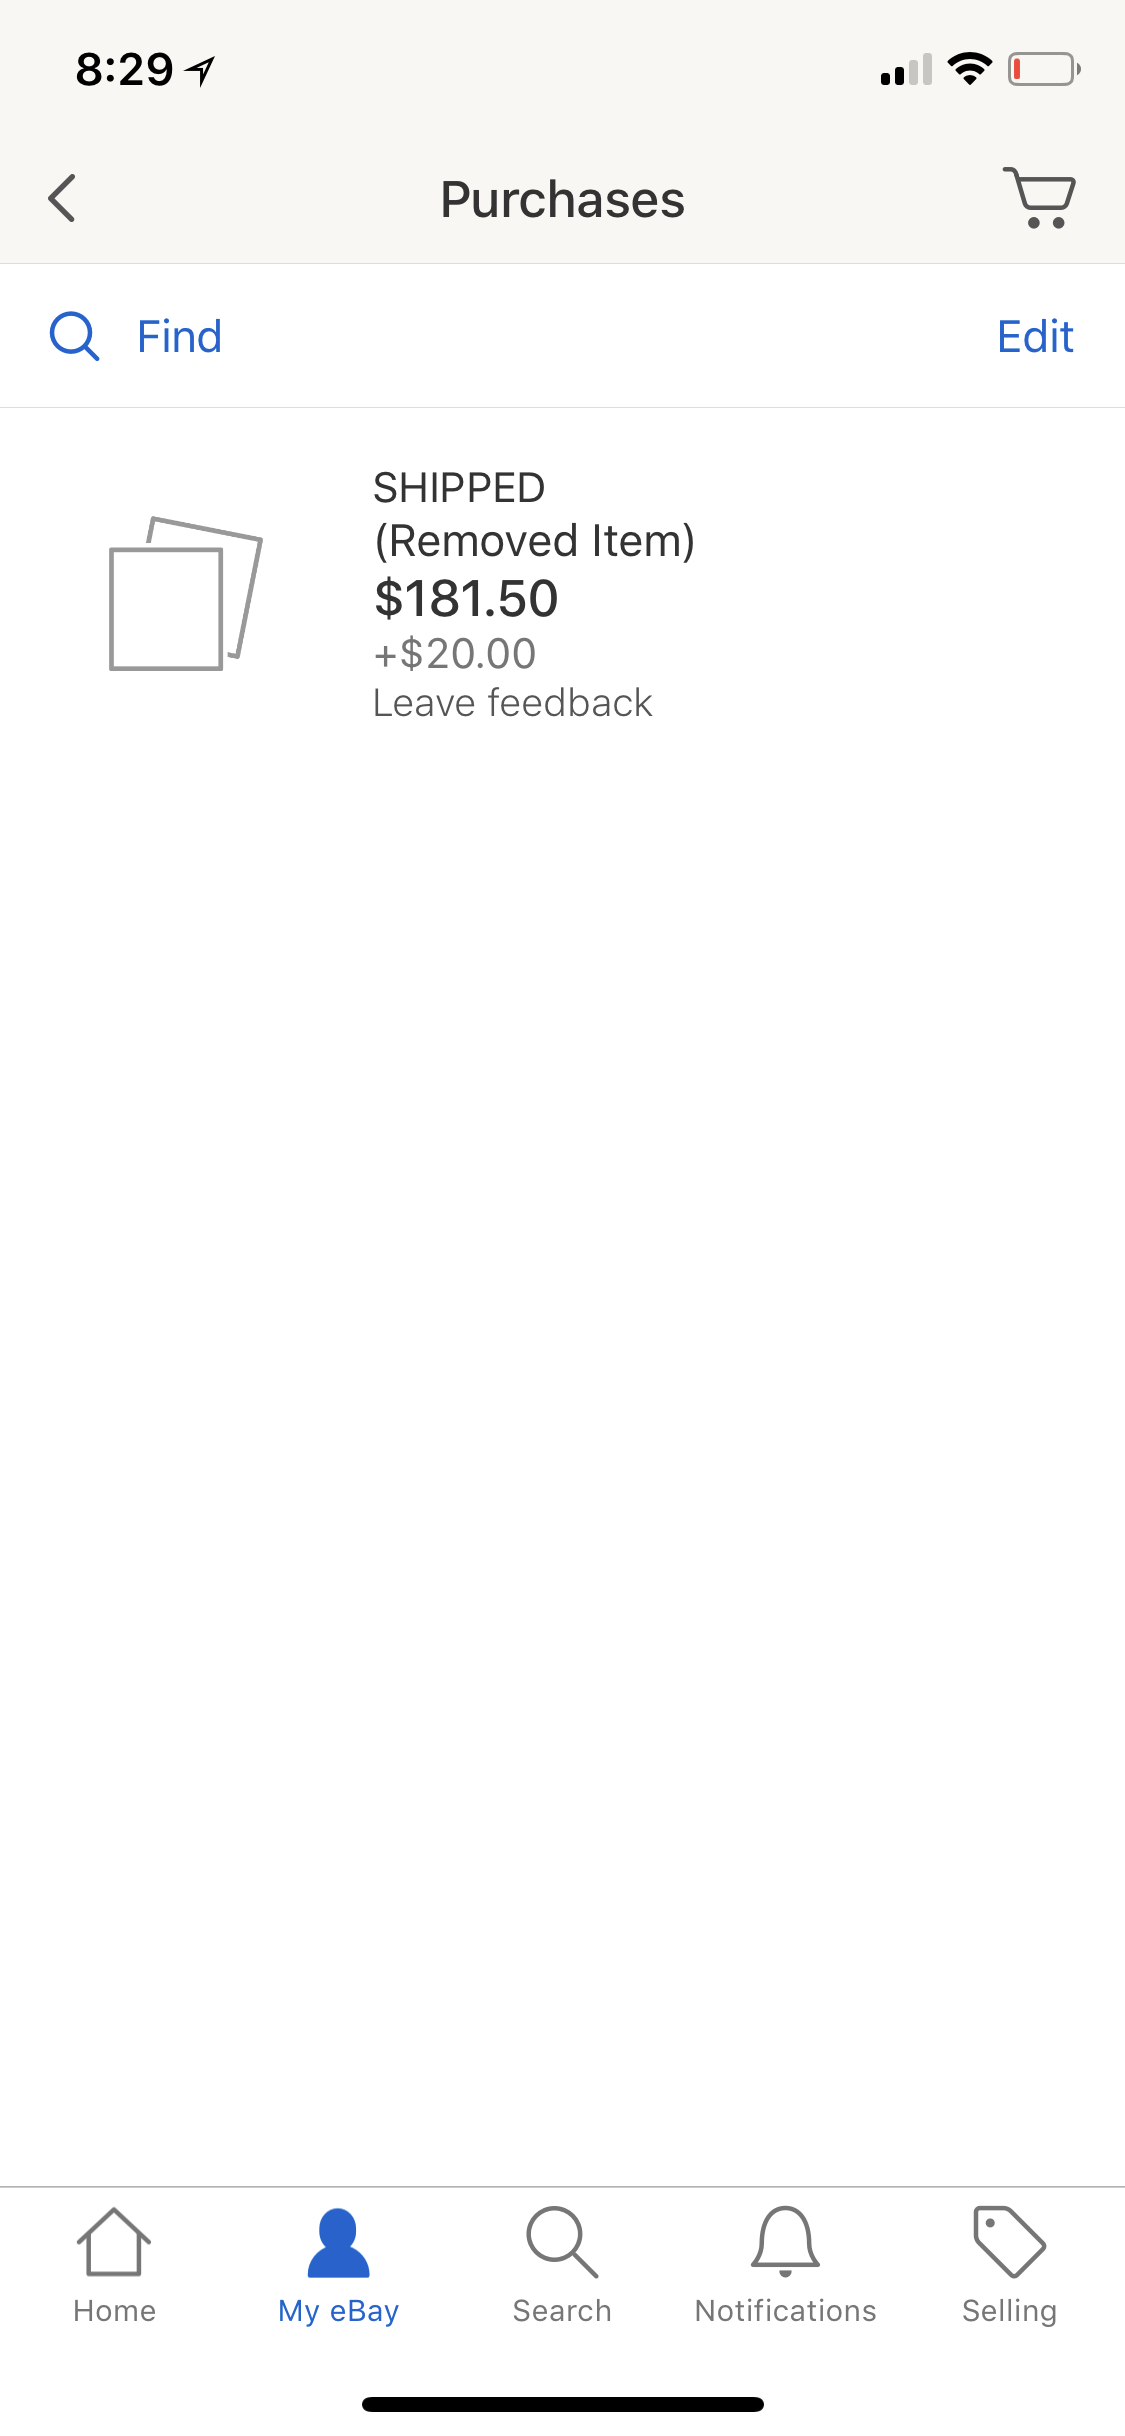 Item Removed From Purchases Can T Leave Feedback The Ebay Community